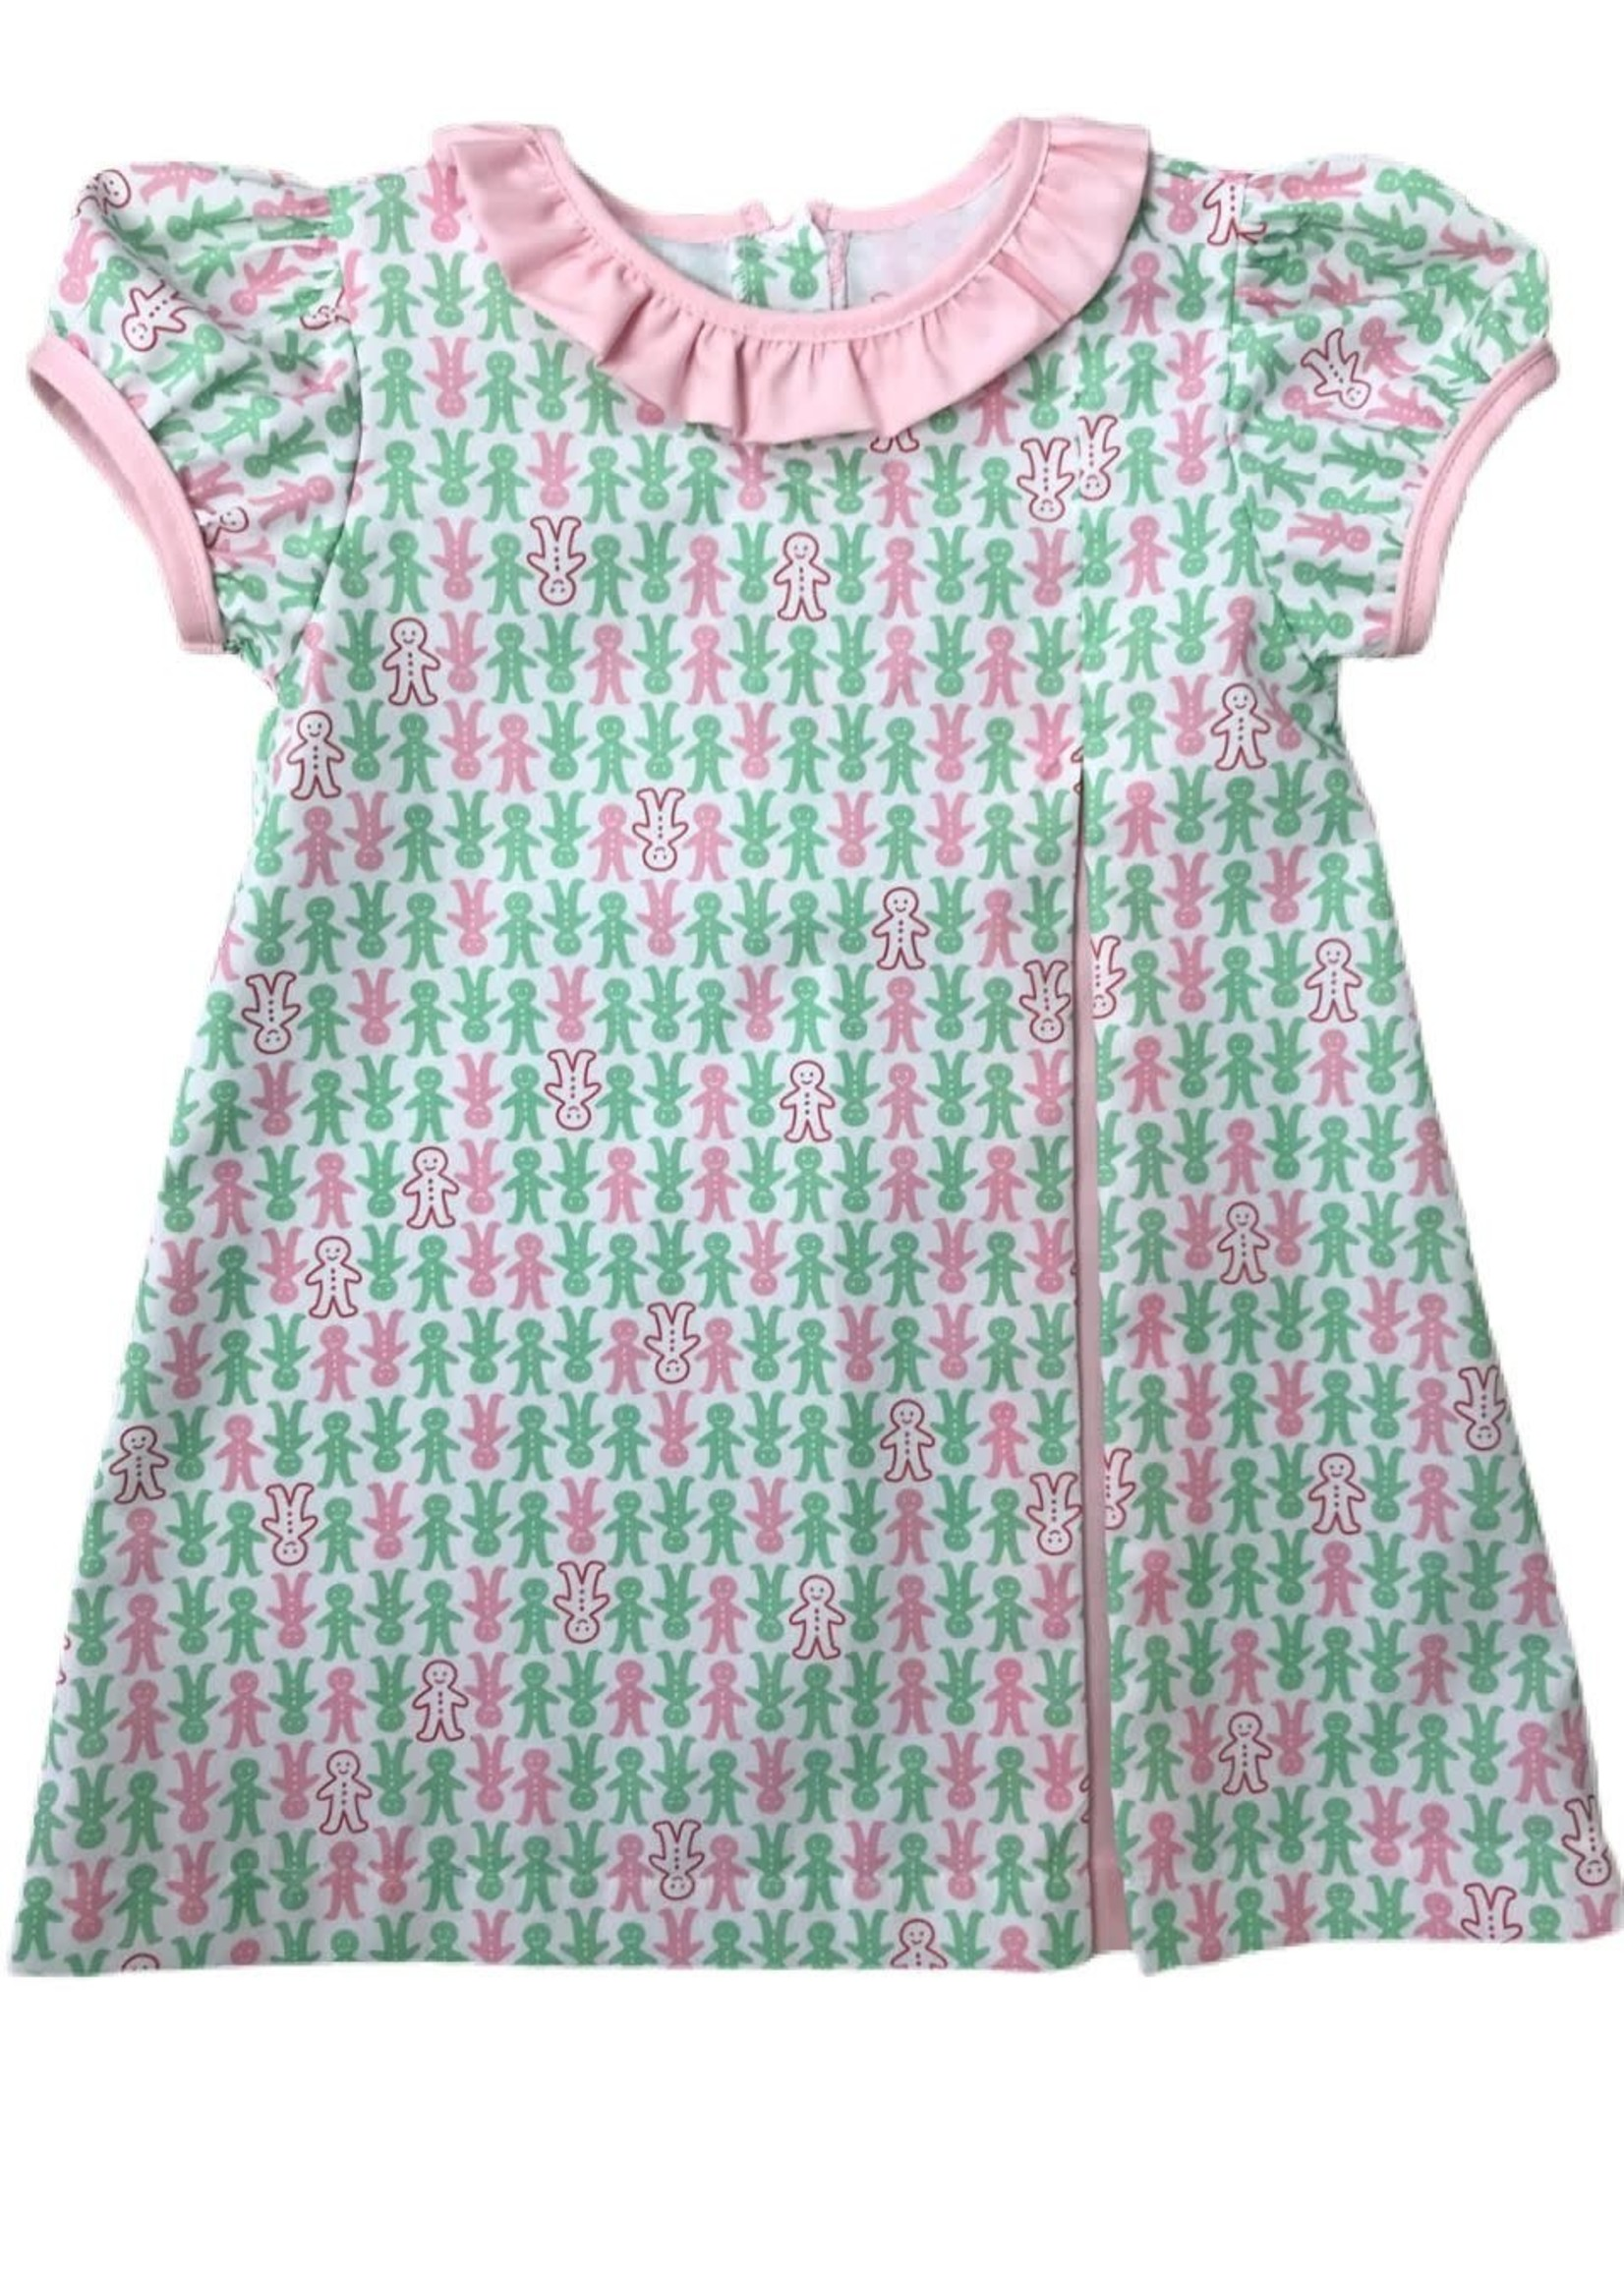 james and lottie Gingerbread Payton Dress